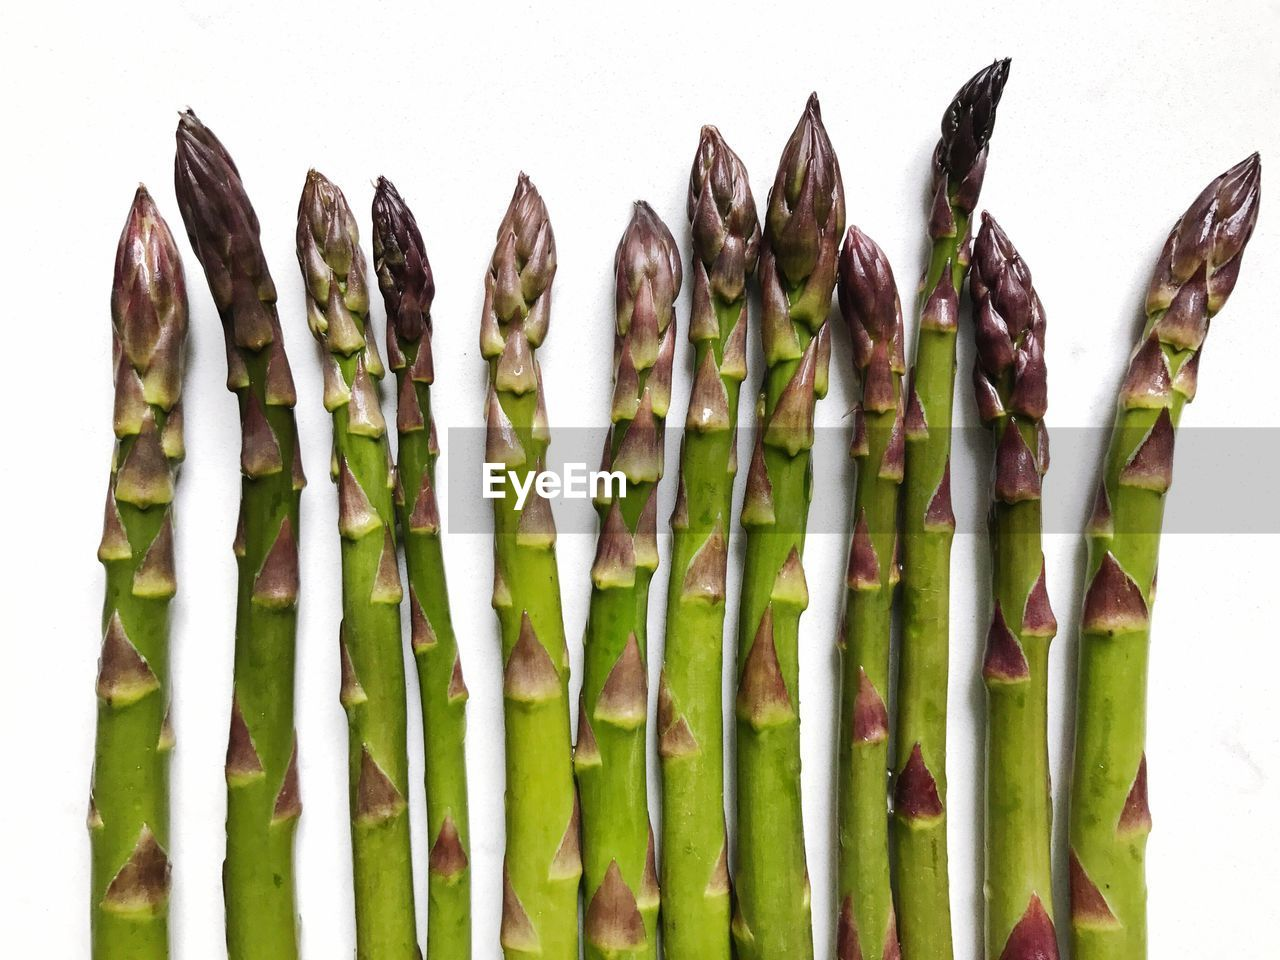 High angle view of asparagus against white background